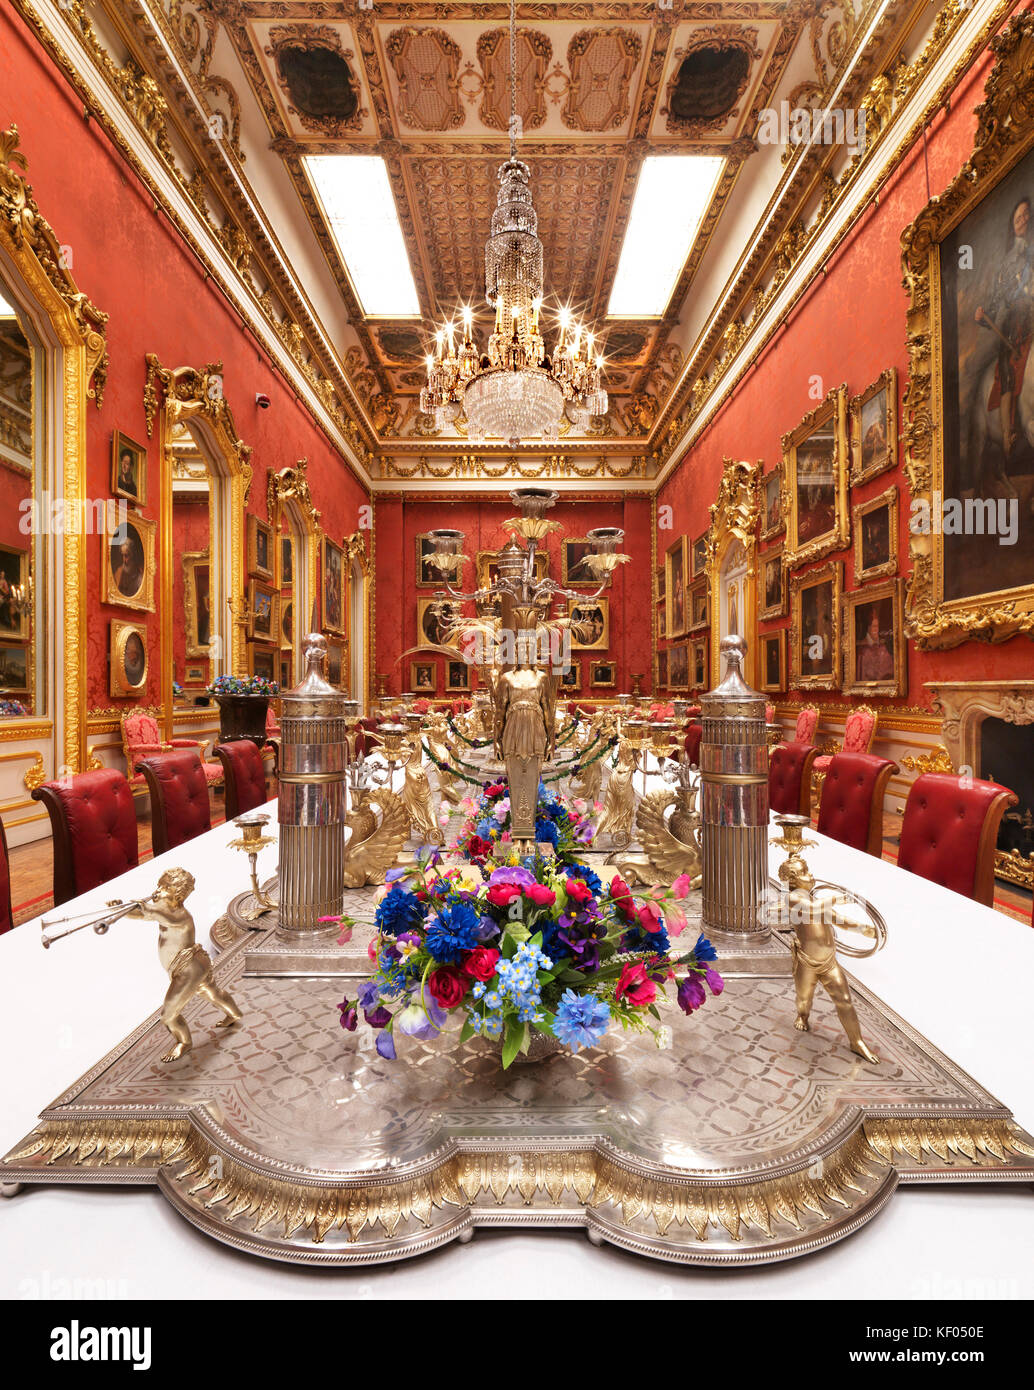 APSLEY HOUSE, London. View of the Waterloo Gallery dressed for a banquet. The Portuguese Service. - Stock Image